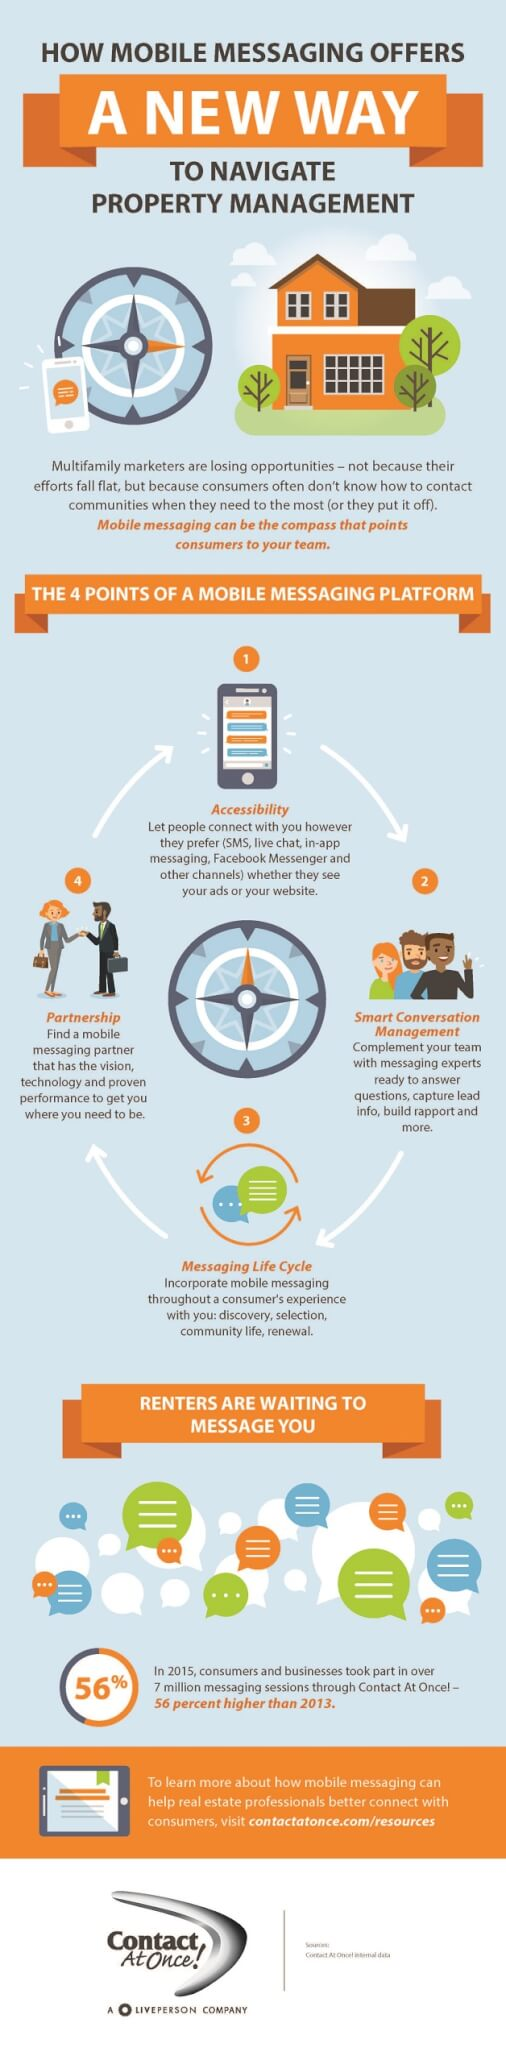 Infographic shows how mobile messaging fits into property management